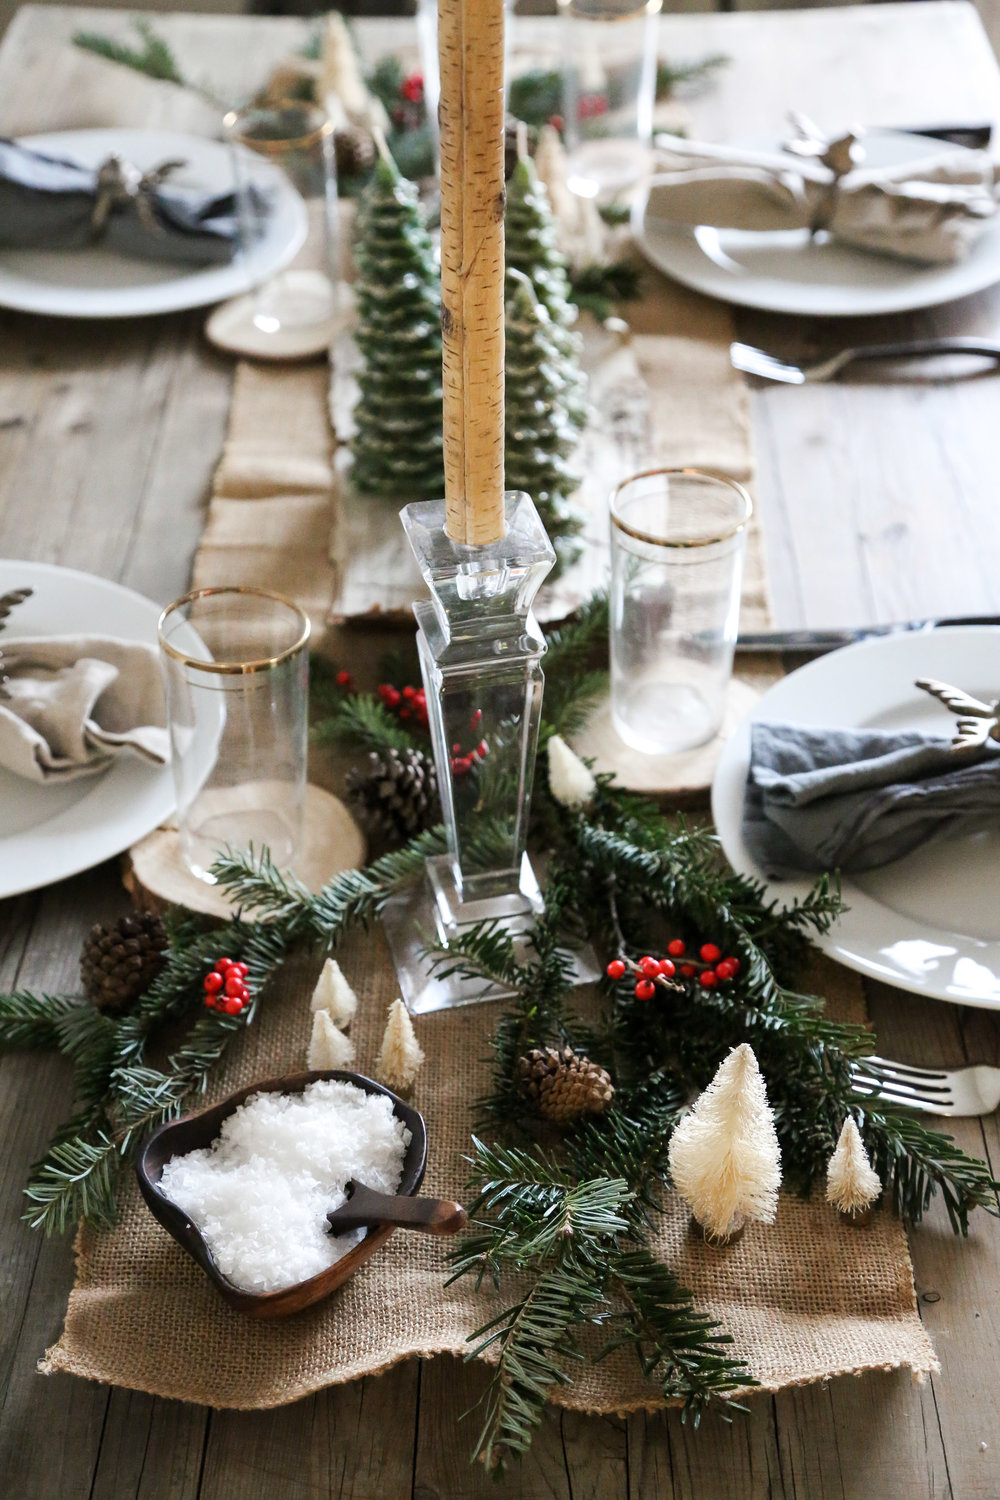 How-to-create-a-rustic-cozy-winter-woods-tablescape-for-the-holidays9.jpg